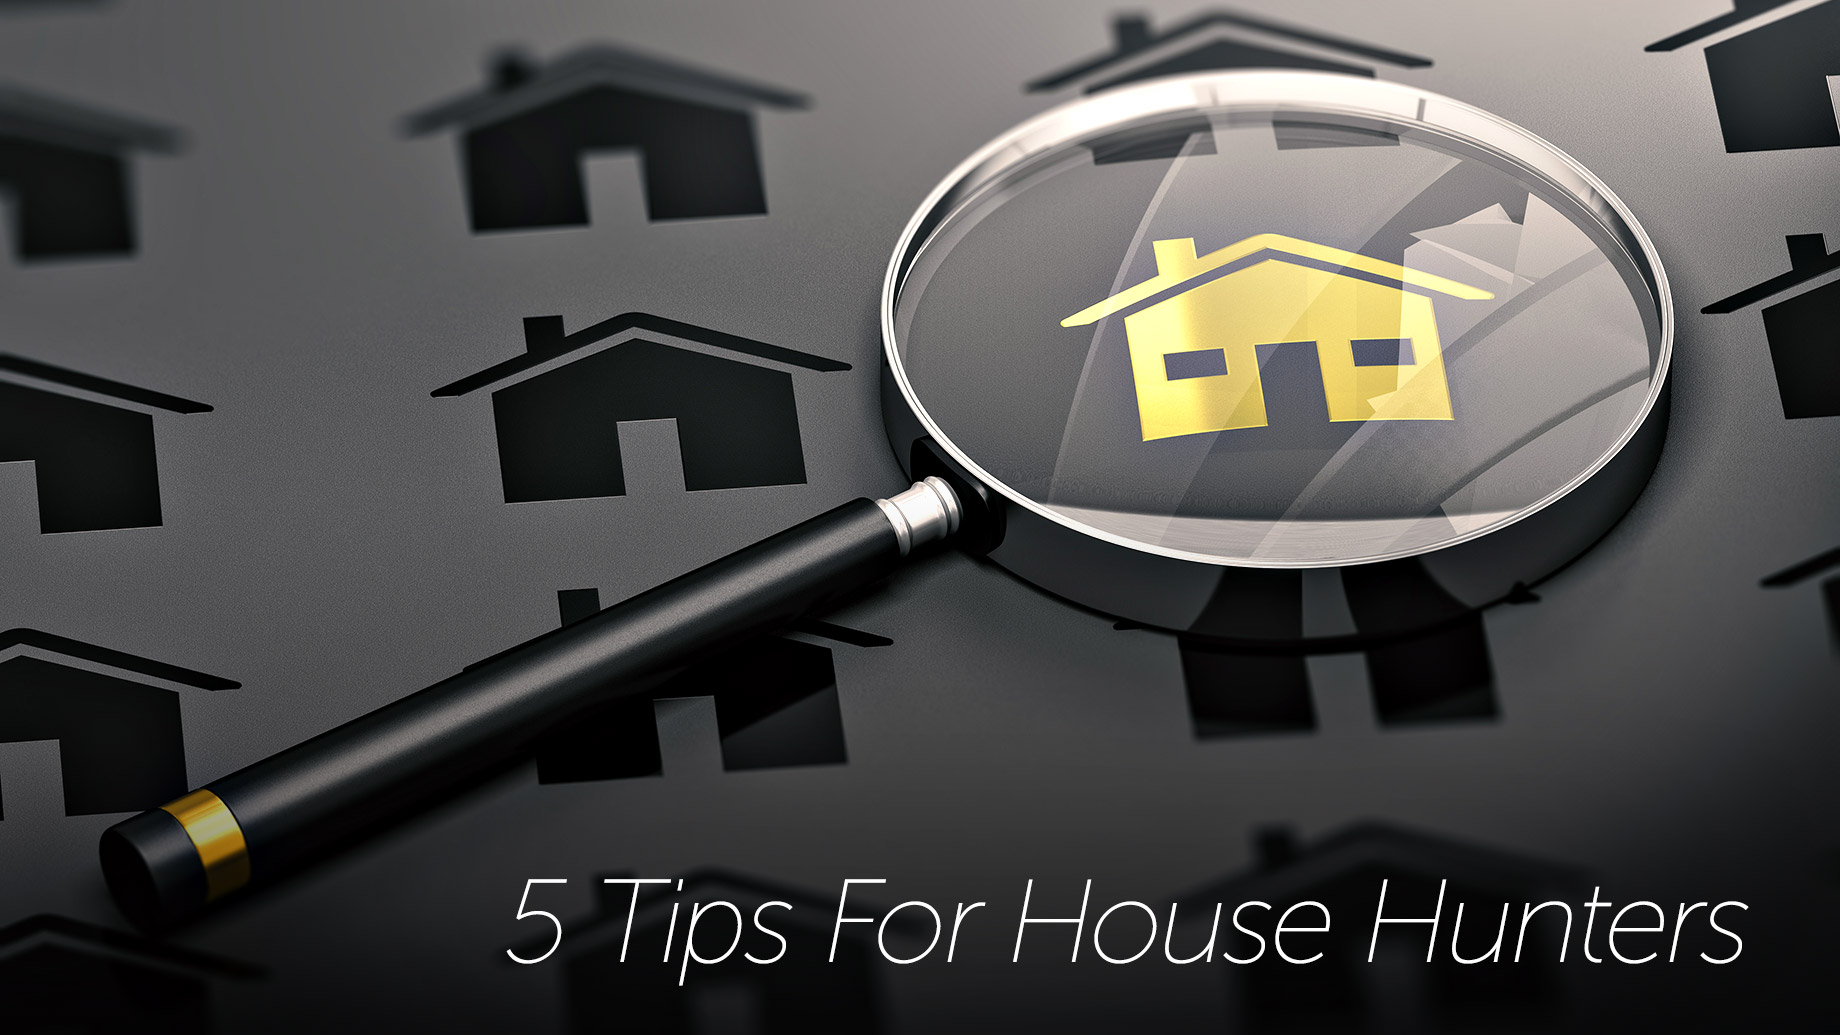 5 Tips For House Hunters